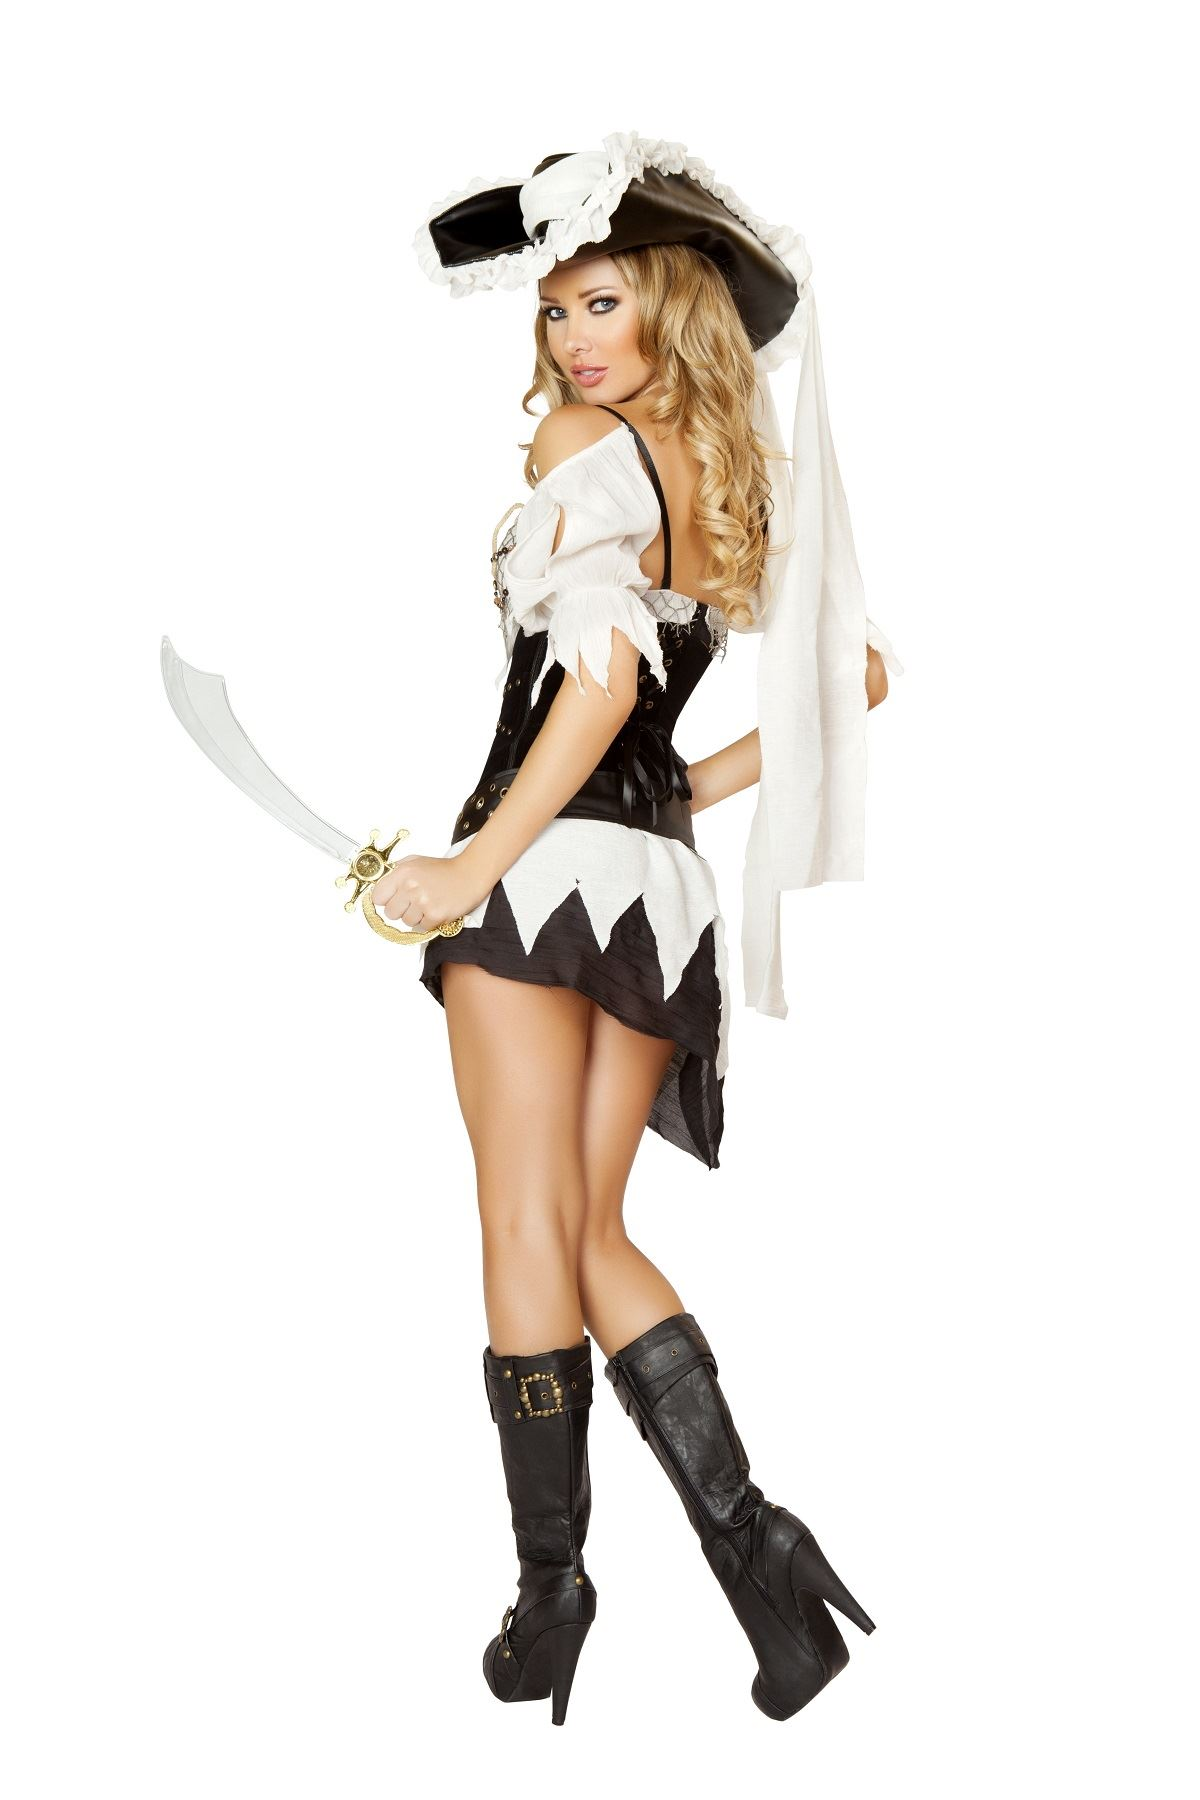 Adult Shipwrecked Pirate Woman Sailor Costume Adult Shipwrecked Pirate Woman Sailor Costume  sc 1 st  The Costume Land & Adult Shipwrecked Pirate Woman Sailor Costume   $95.99   The Costume ...